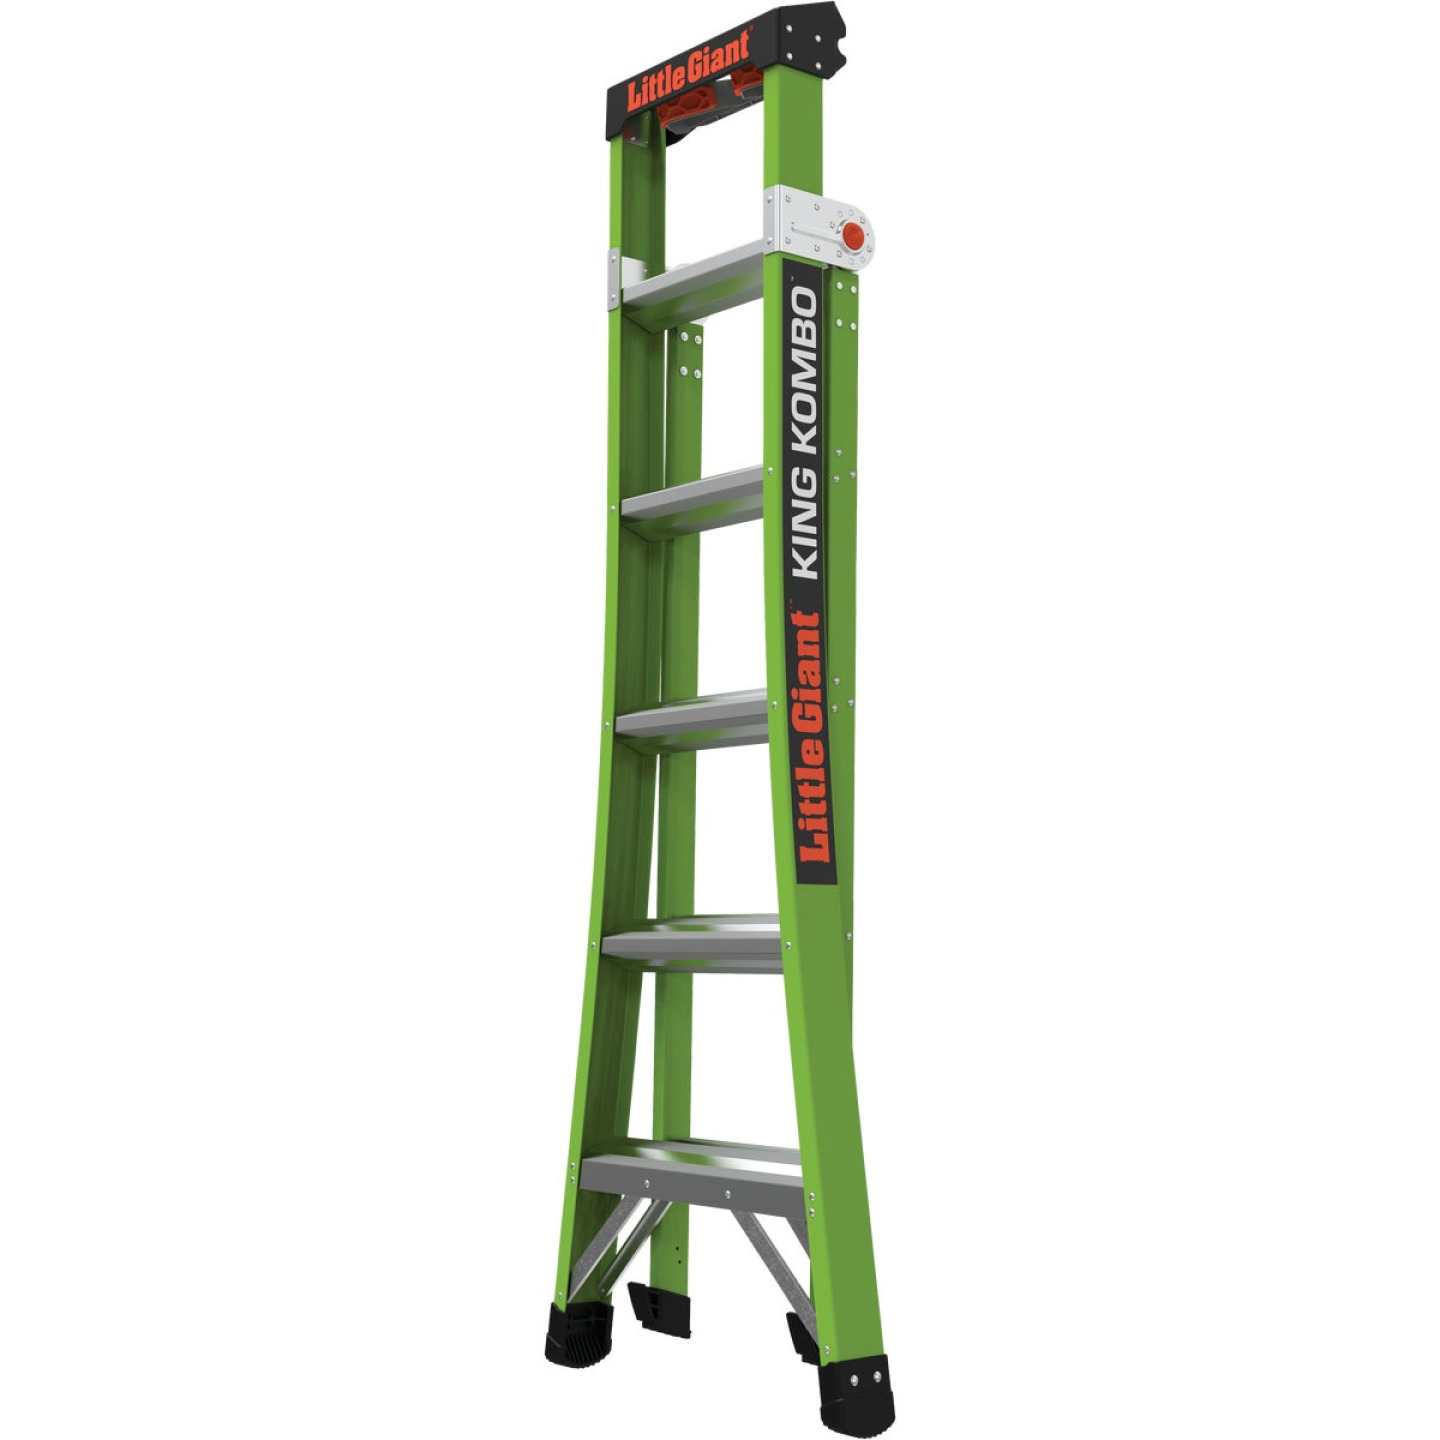 Little Giant King Kombo 6 Ft. To 10 Ft. 3-N-1 All Access Fiberglass Ladder With 375 Lb. Load Capacity Type 1AA Ladder Rating Image 3